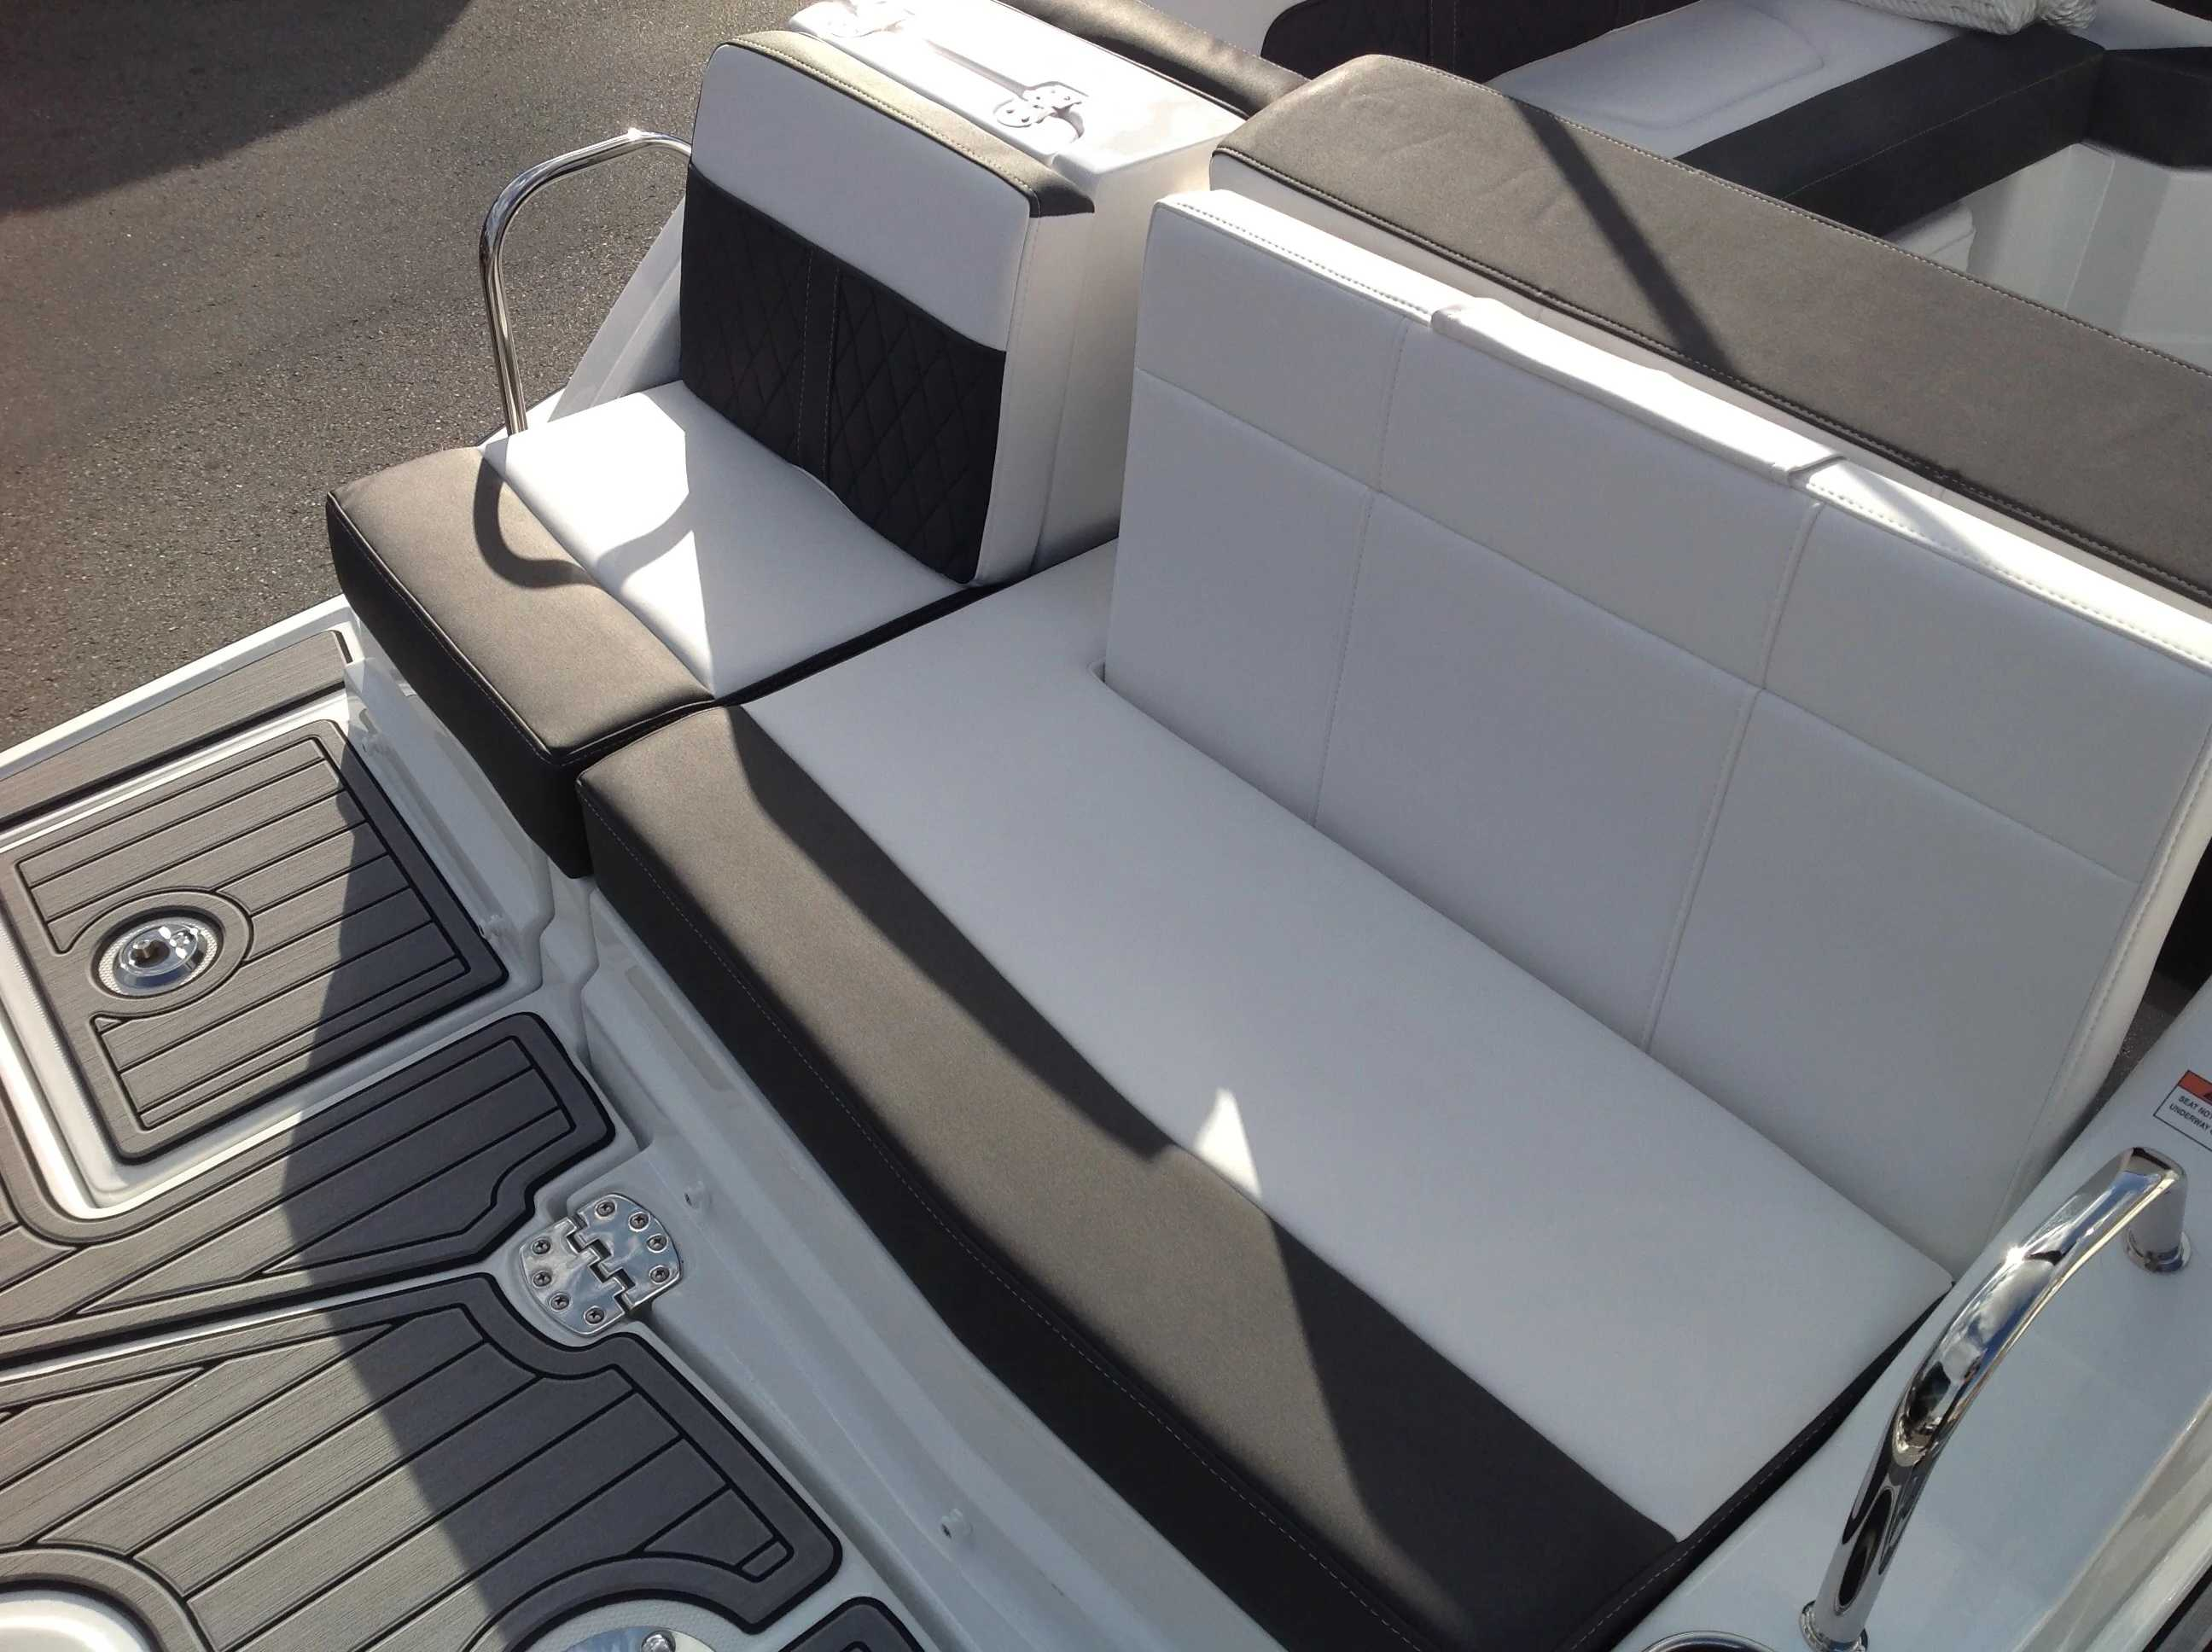 2021 Monterey boat for sale, model of the boat is M45 & Image # 13 of 21